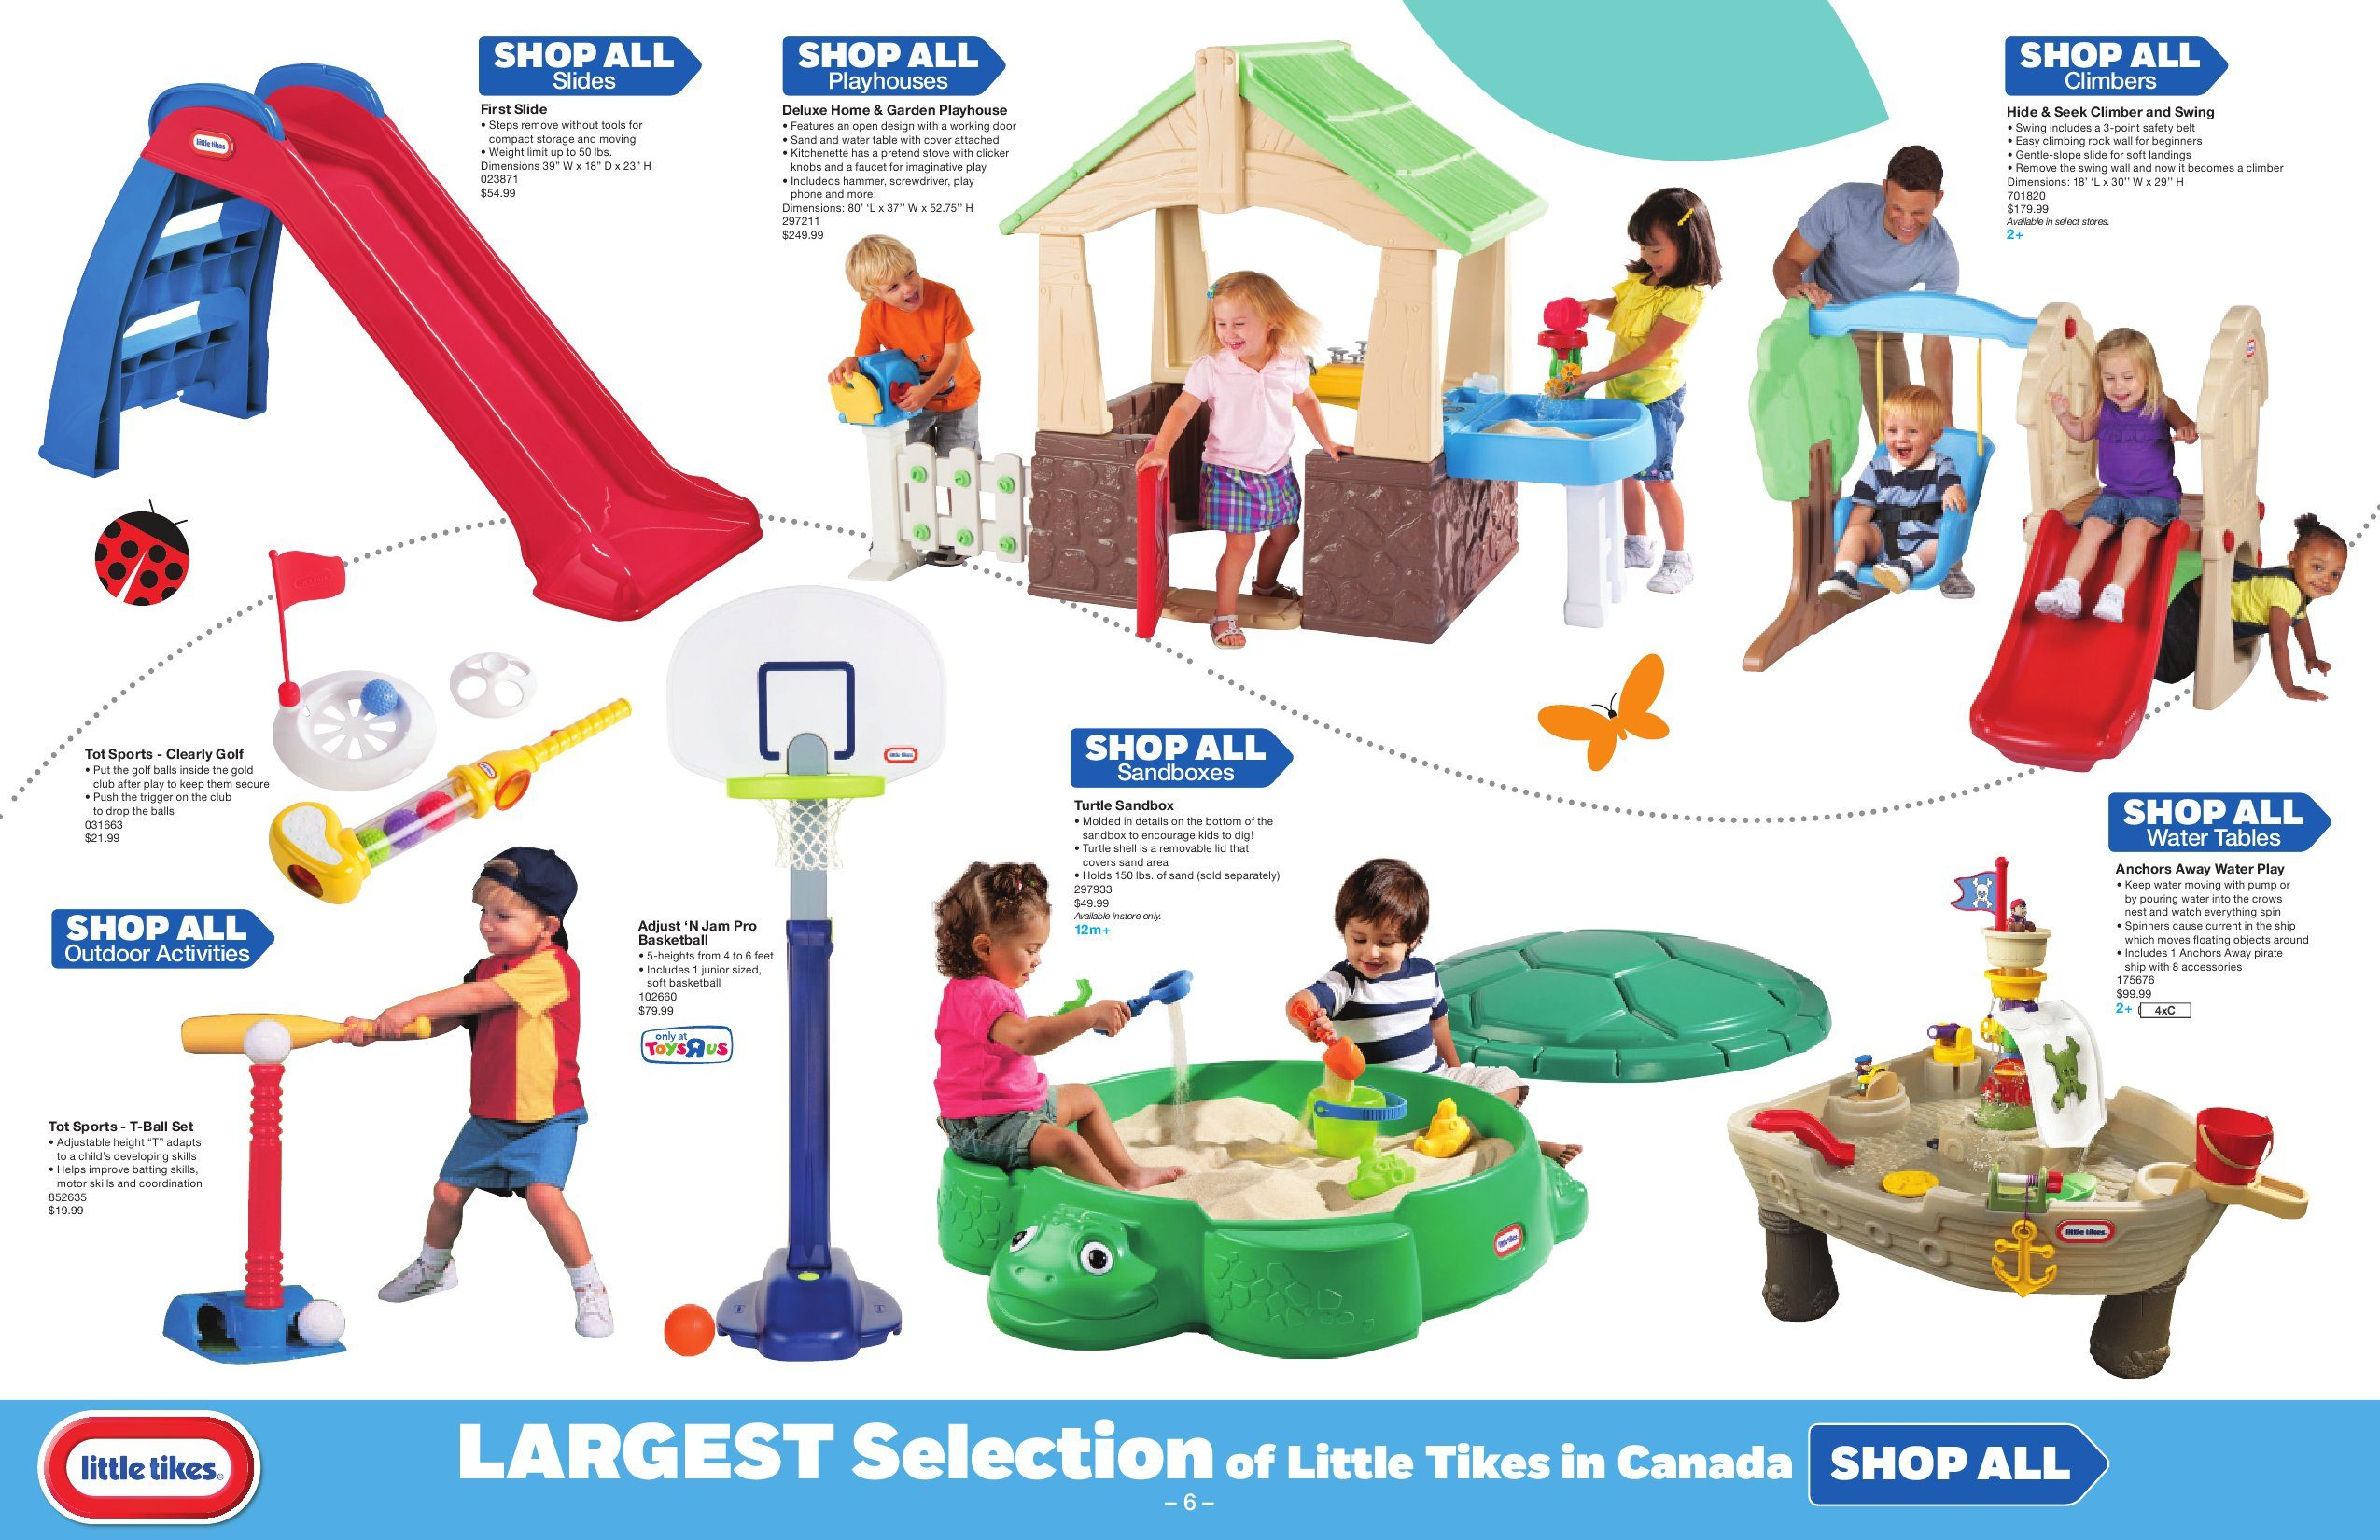 Toys R Us Weekly Flyer - The Ultimate Guide to Outdoor Fun! - Mar 17 ...